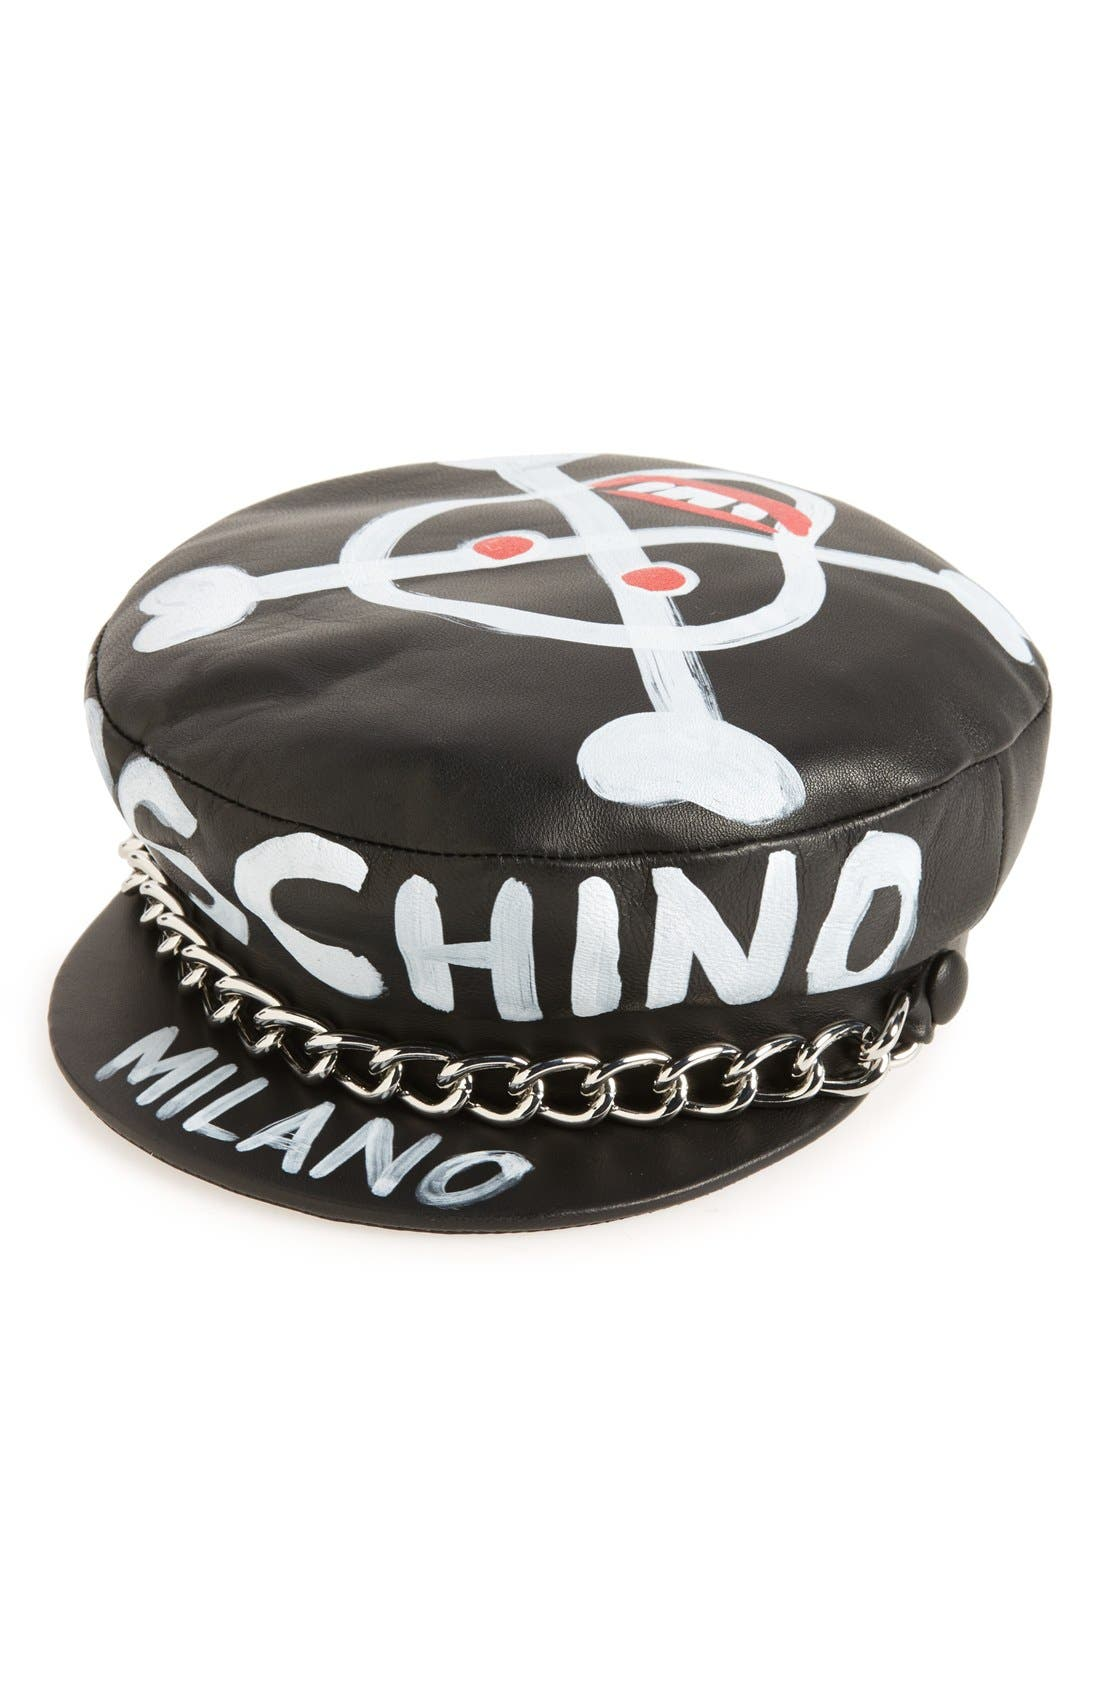 Skulls Leather Cap,                         Main,                         color, Black